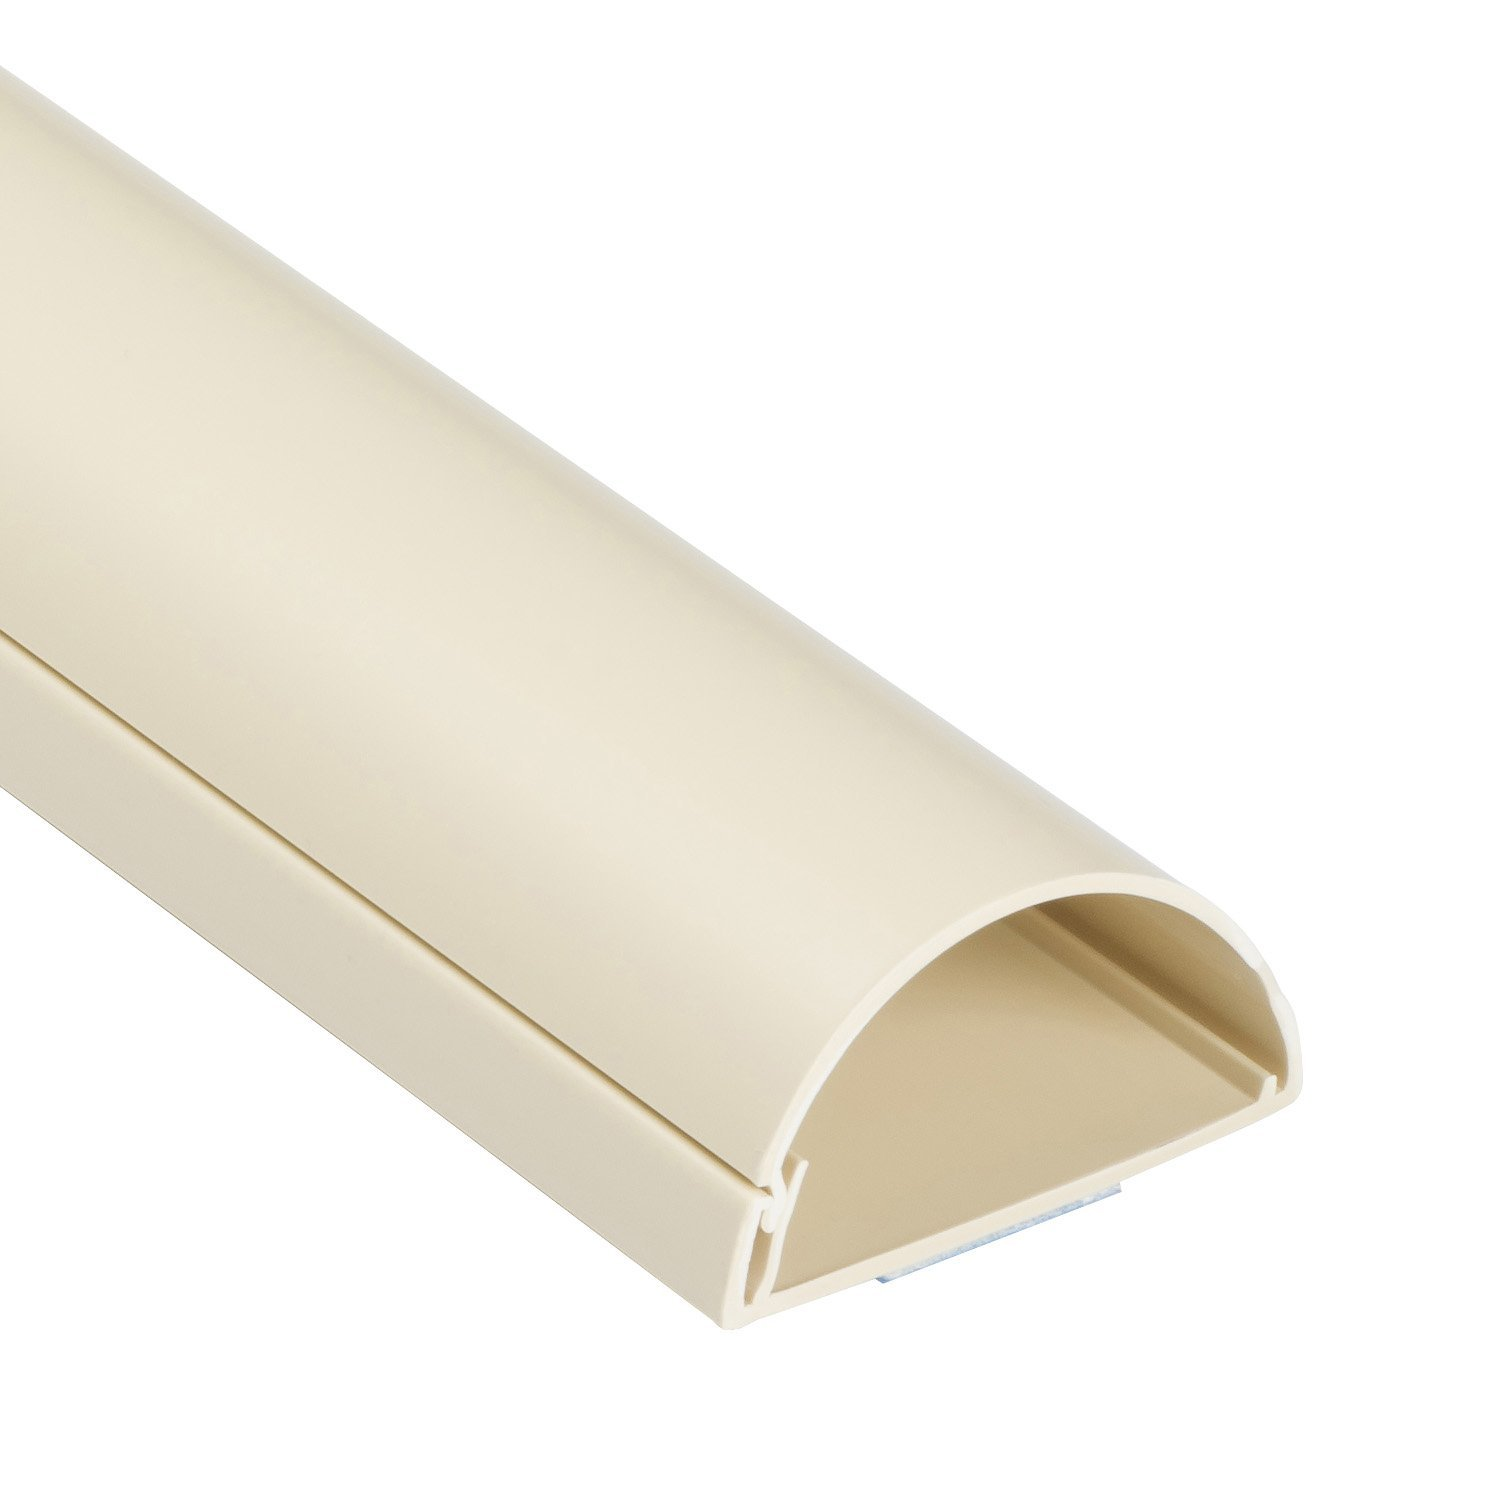 D-Line TV Cable Raceway On-Wall Cord Cover | 1D5025M Maxi | Surface Mount Electrical Channel to Hide and Conceal Cords, Cables, Wires | Beige